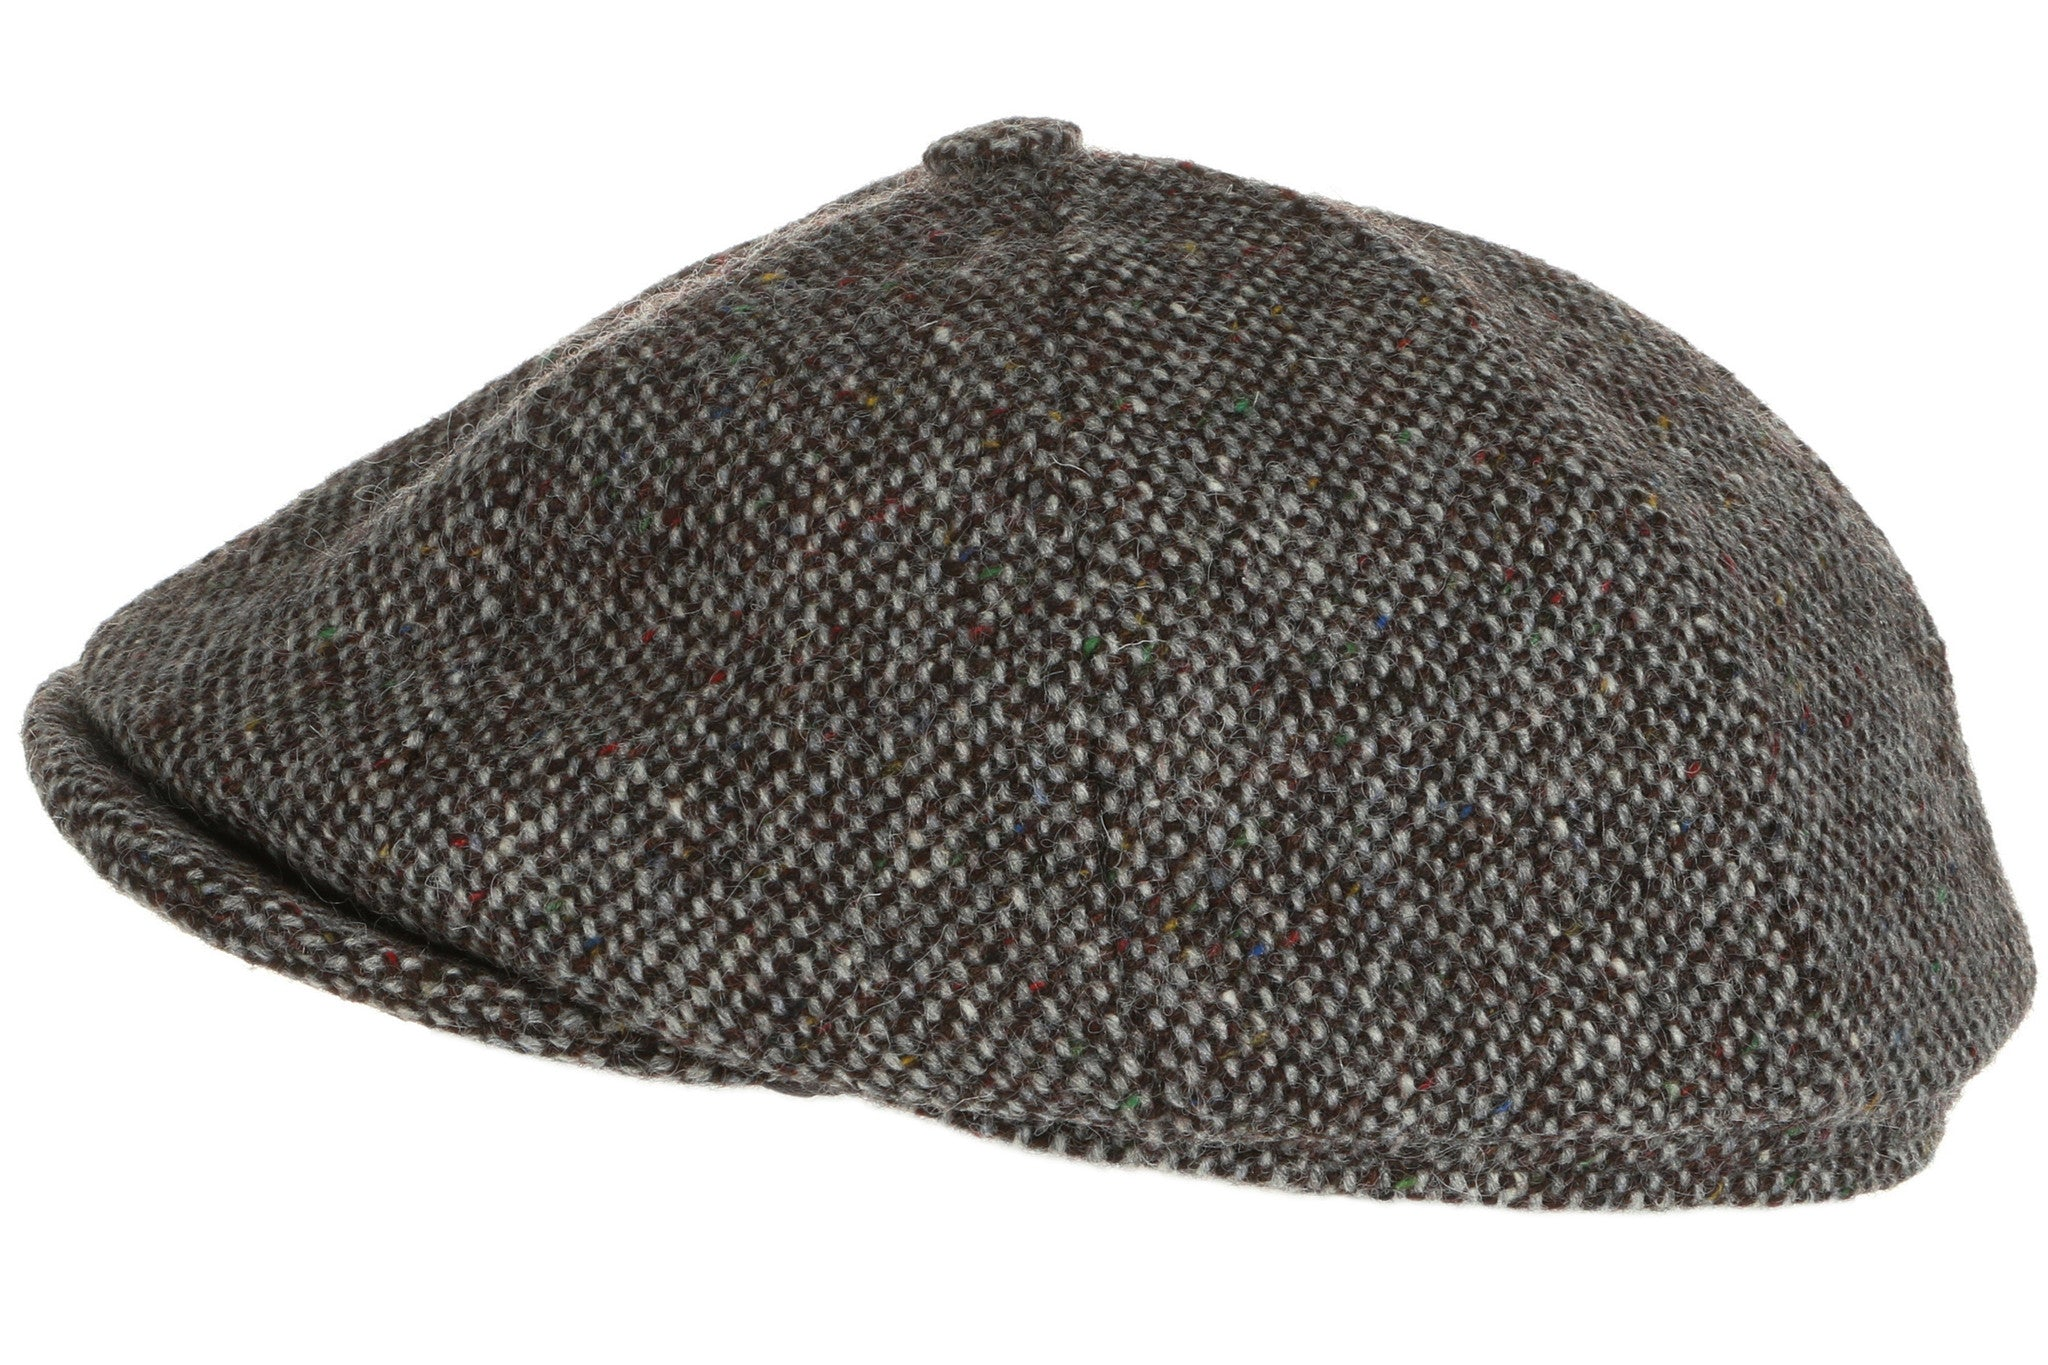 e44b3a1f ... Herringbone Hanna Hats Newsboy Cap Tweed Grey Salt-n-Pepper ...